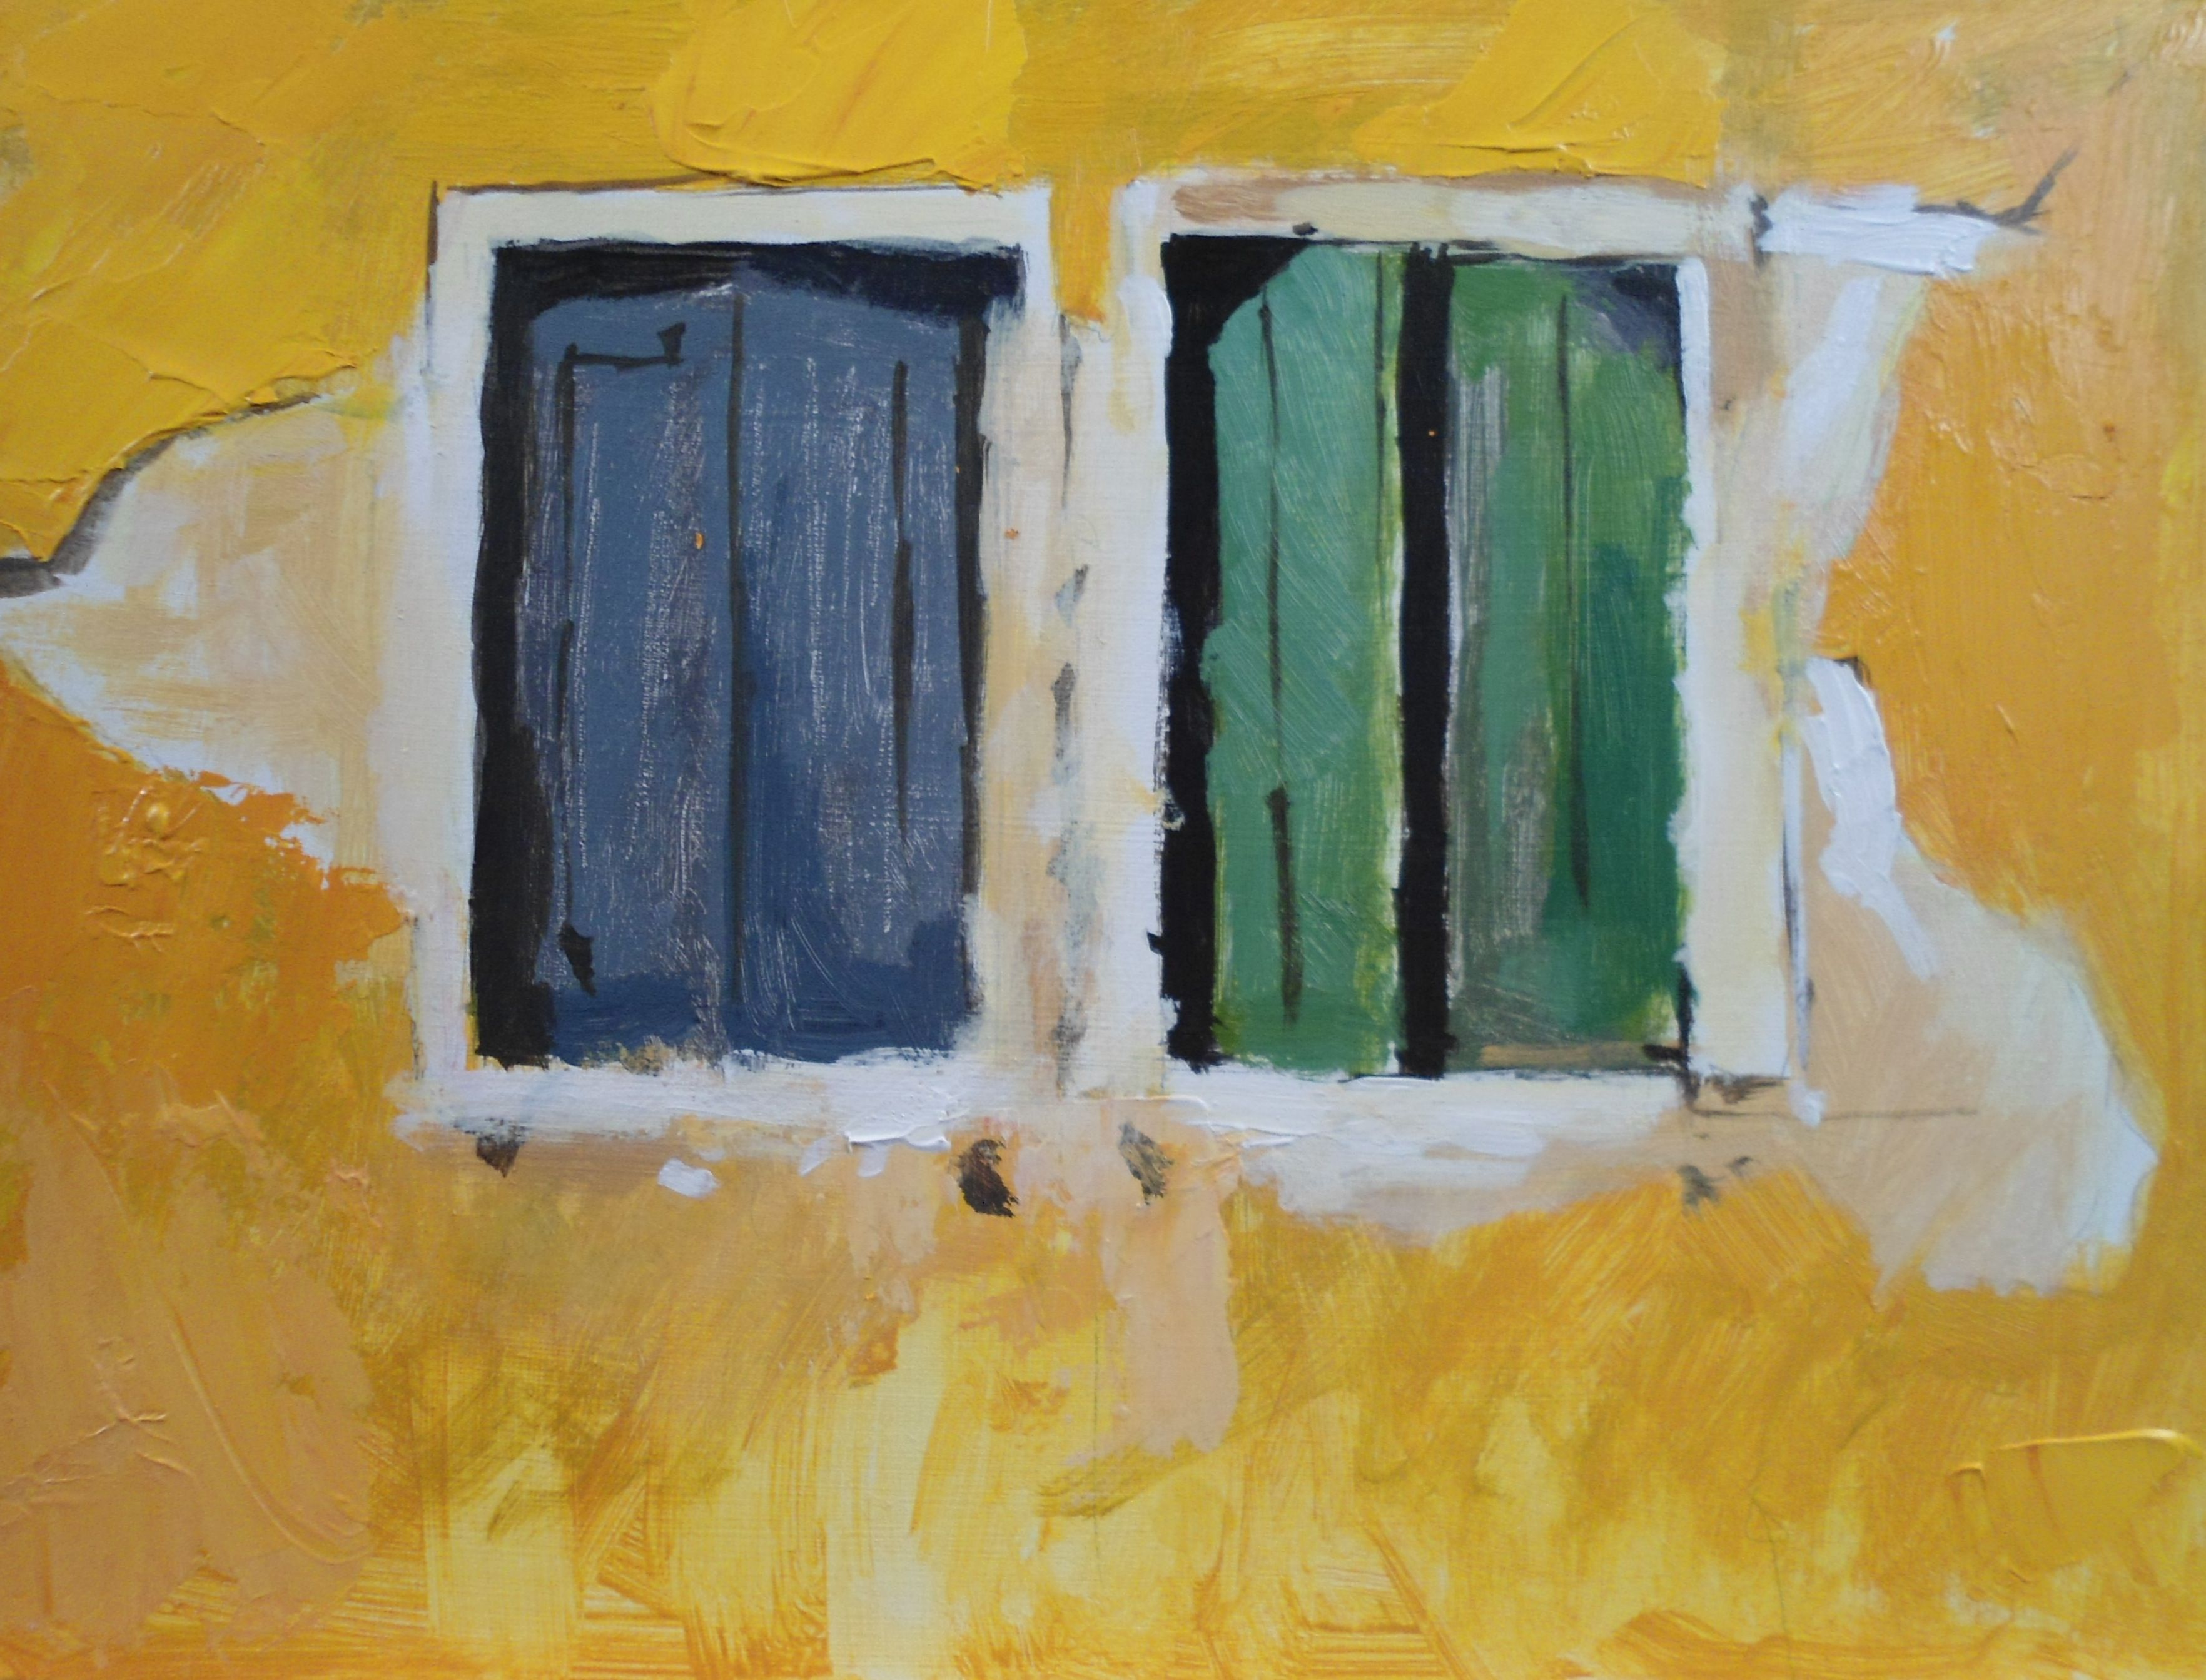 Watercolor artist magazine palm coast fl - These Mediterranean Shutters Form Part Of A Course From Will Kemp On How To Paint Townscapes